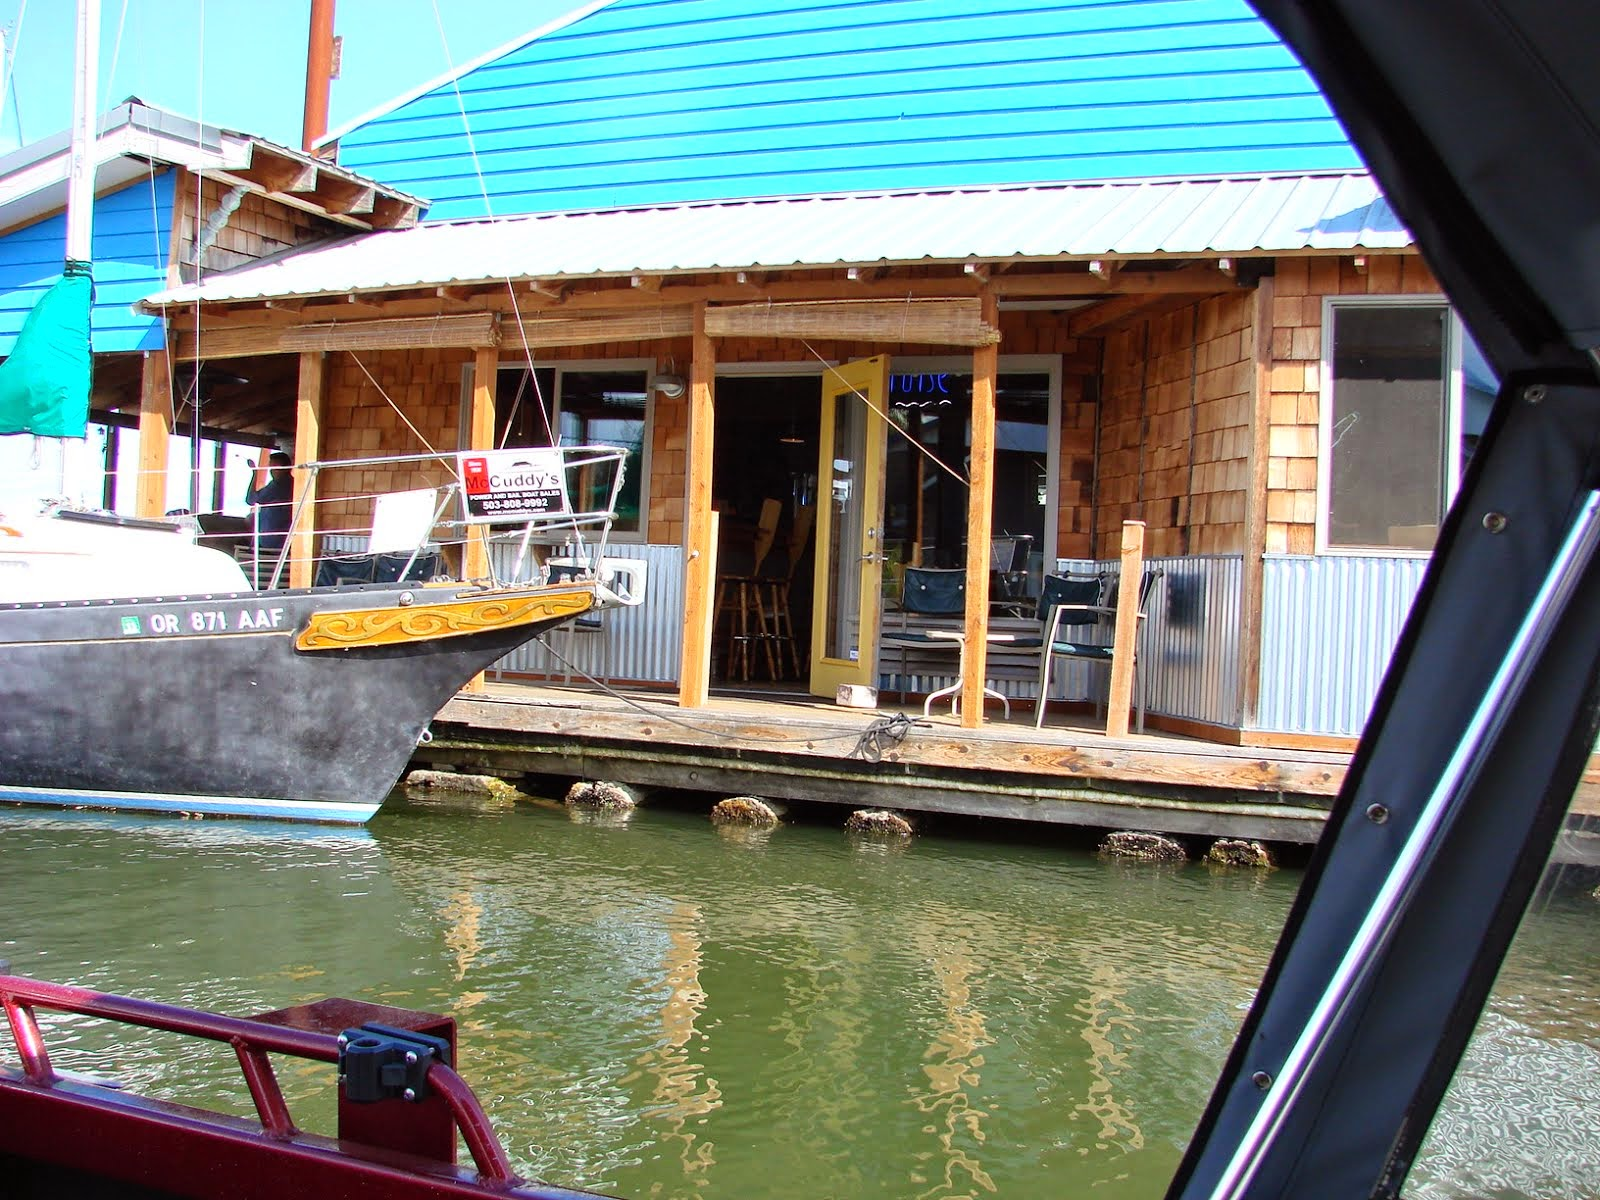 We cruised the river and had lunch here.